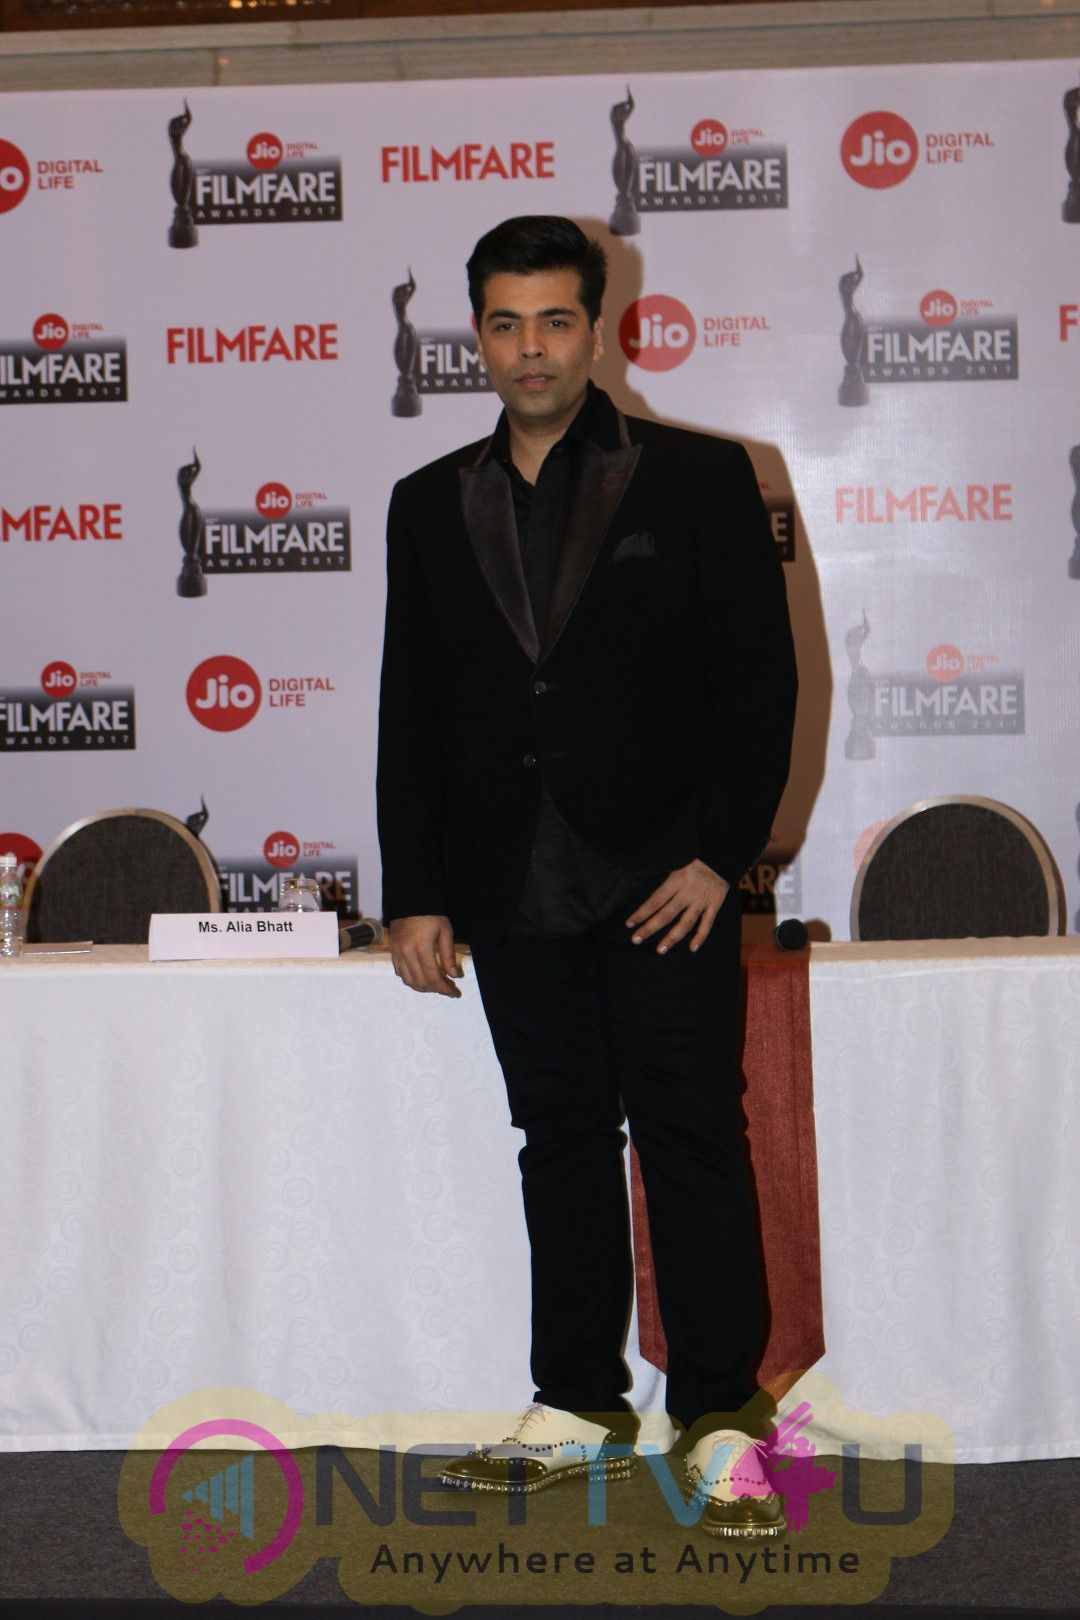 Announcement PC Of The 62nd Jio FilmFare Awards 2017 With Alia Bhatt & Karan Johar Stills